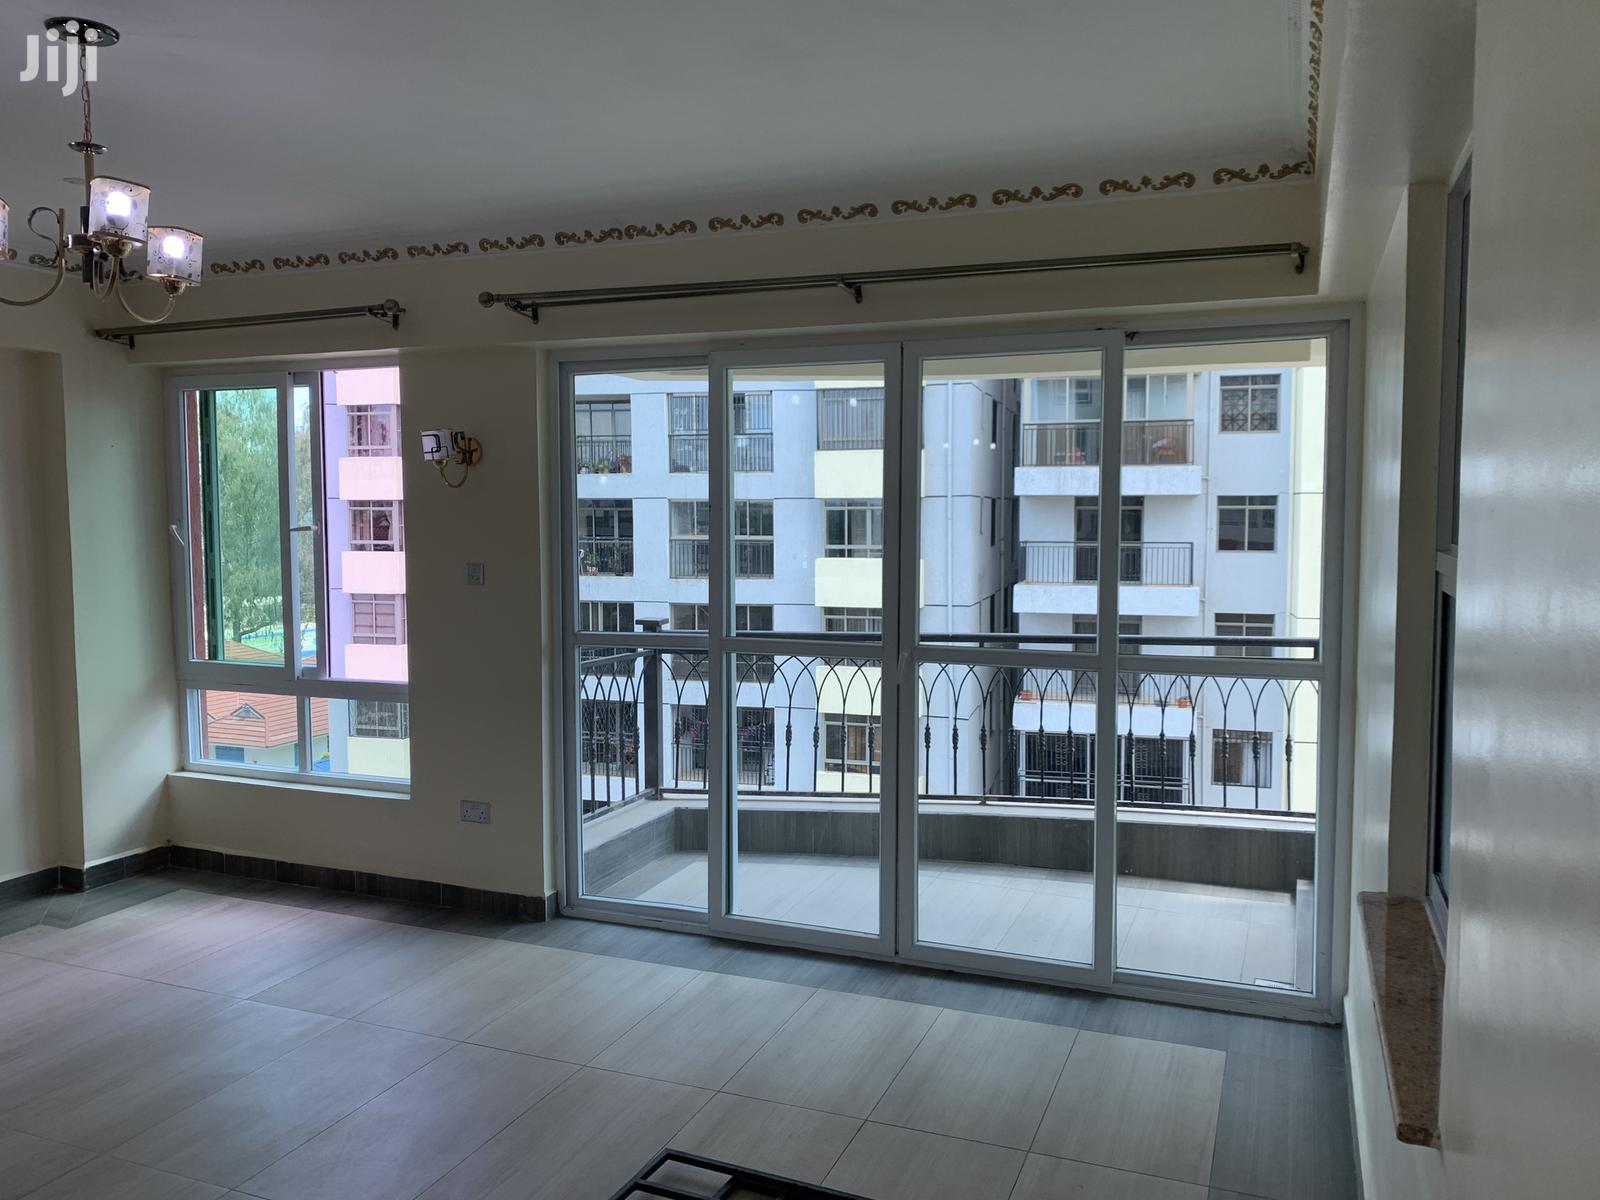 3 Bedroom Apartment +Dsq Next to Yaya Centre | Houses & Apartments For Sale for sale in Kilimani, Nairobi, Kenya